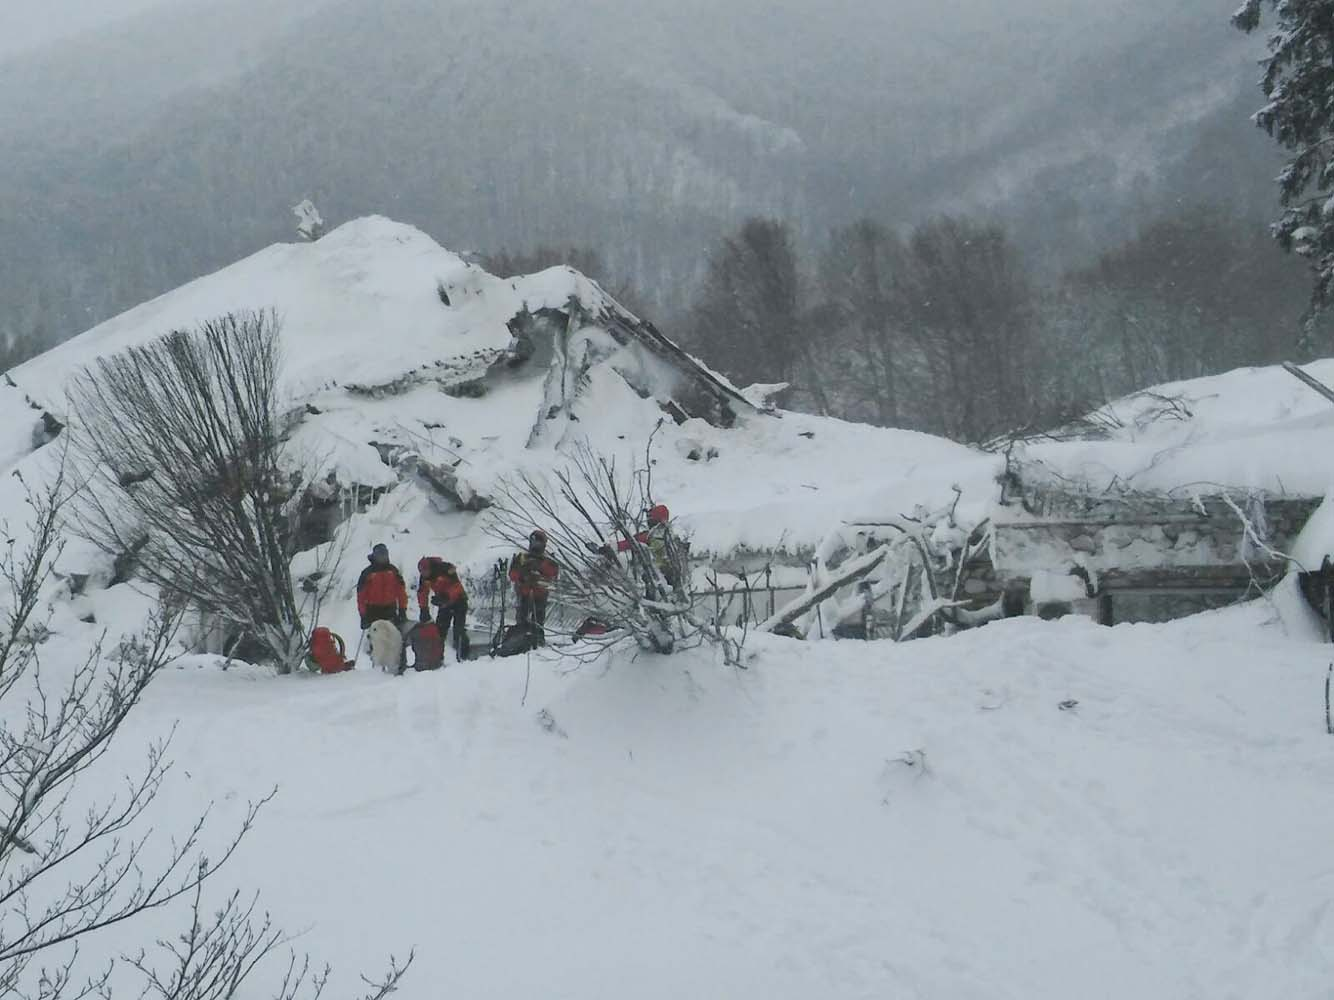 Members of Lazio's Alpine and Speleological Rescue Team stand in front of the Hotel Rigopiano in Farindola, central Italy, hit by an avalanche, in this January 19, 2017 handout picture provided by Lazio's Alpine and Speleological Rescue Team. Soccorso Alpino Speleologico Lazio/Handout via REUTERS ATTENTION EDITORS - THIS IMAGE WAS PROVIDED BY A THIRD PARTY. EDITORIAL USE ONLY. NO RESALES. NO ARCHIVE.